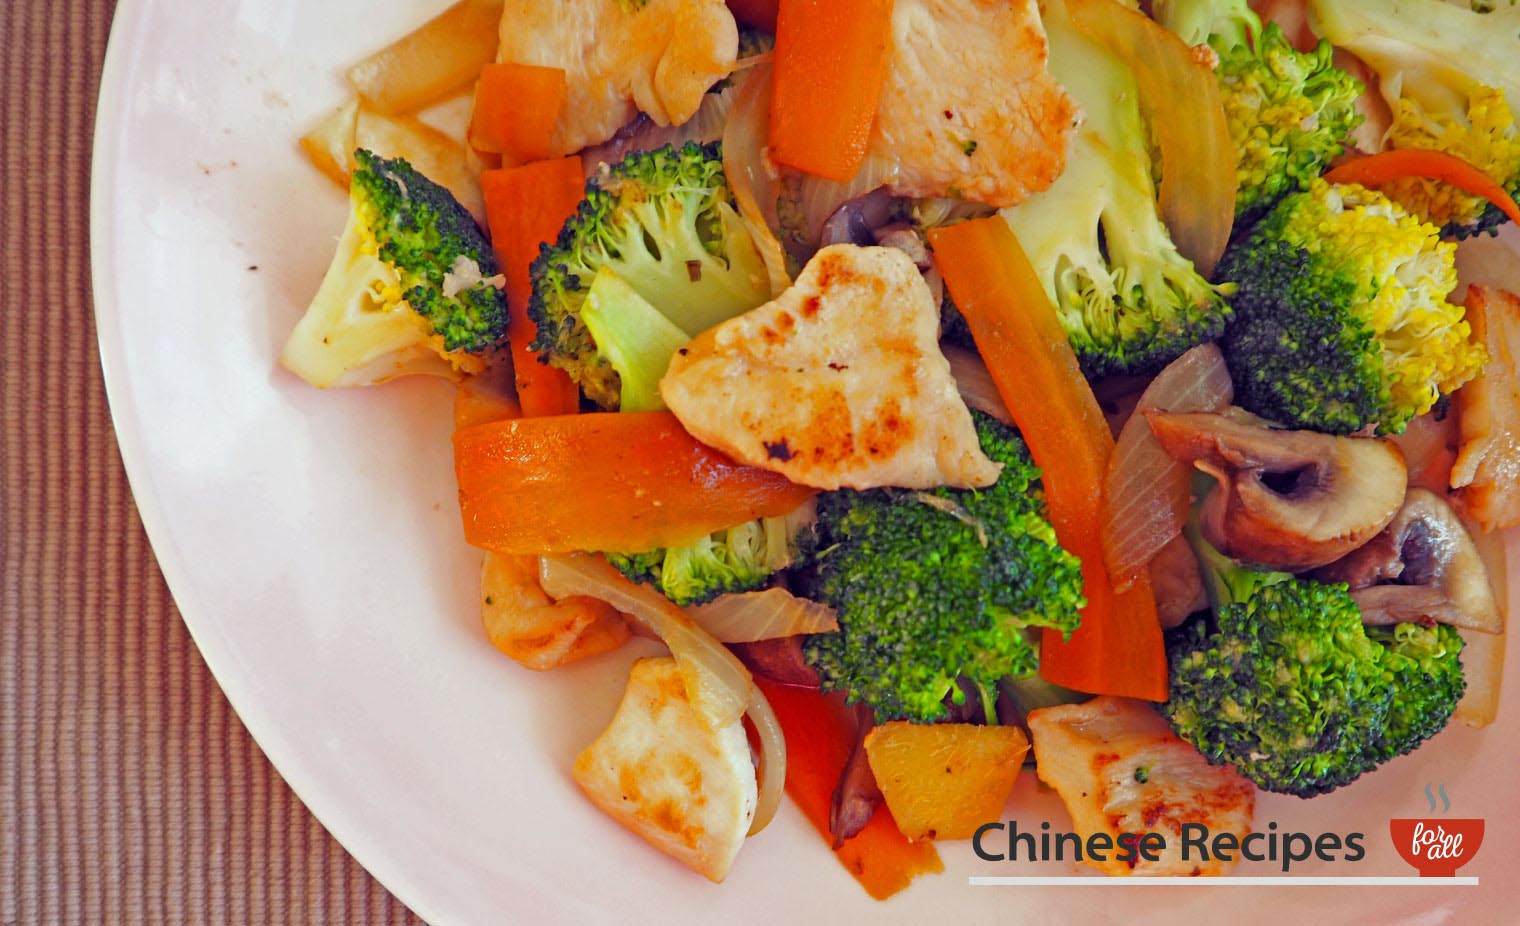 Chicken and Broccoli Vegetable Stir Fry - Chinese Recipes For All